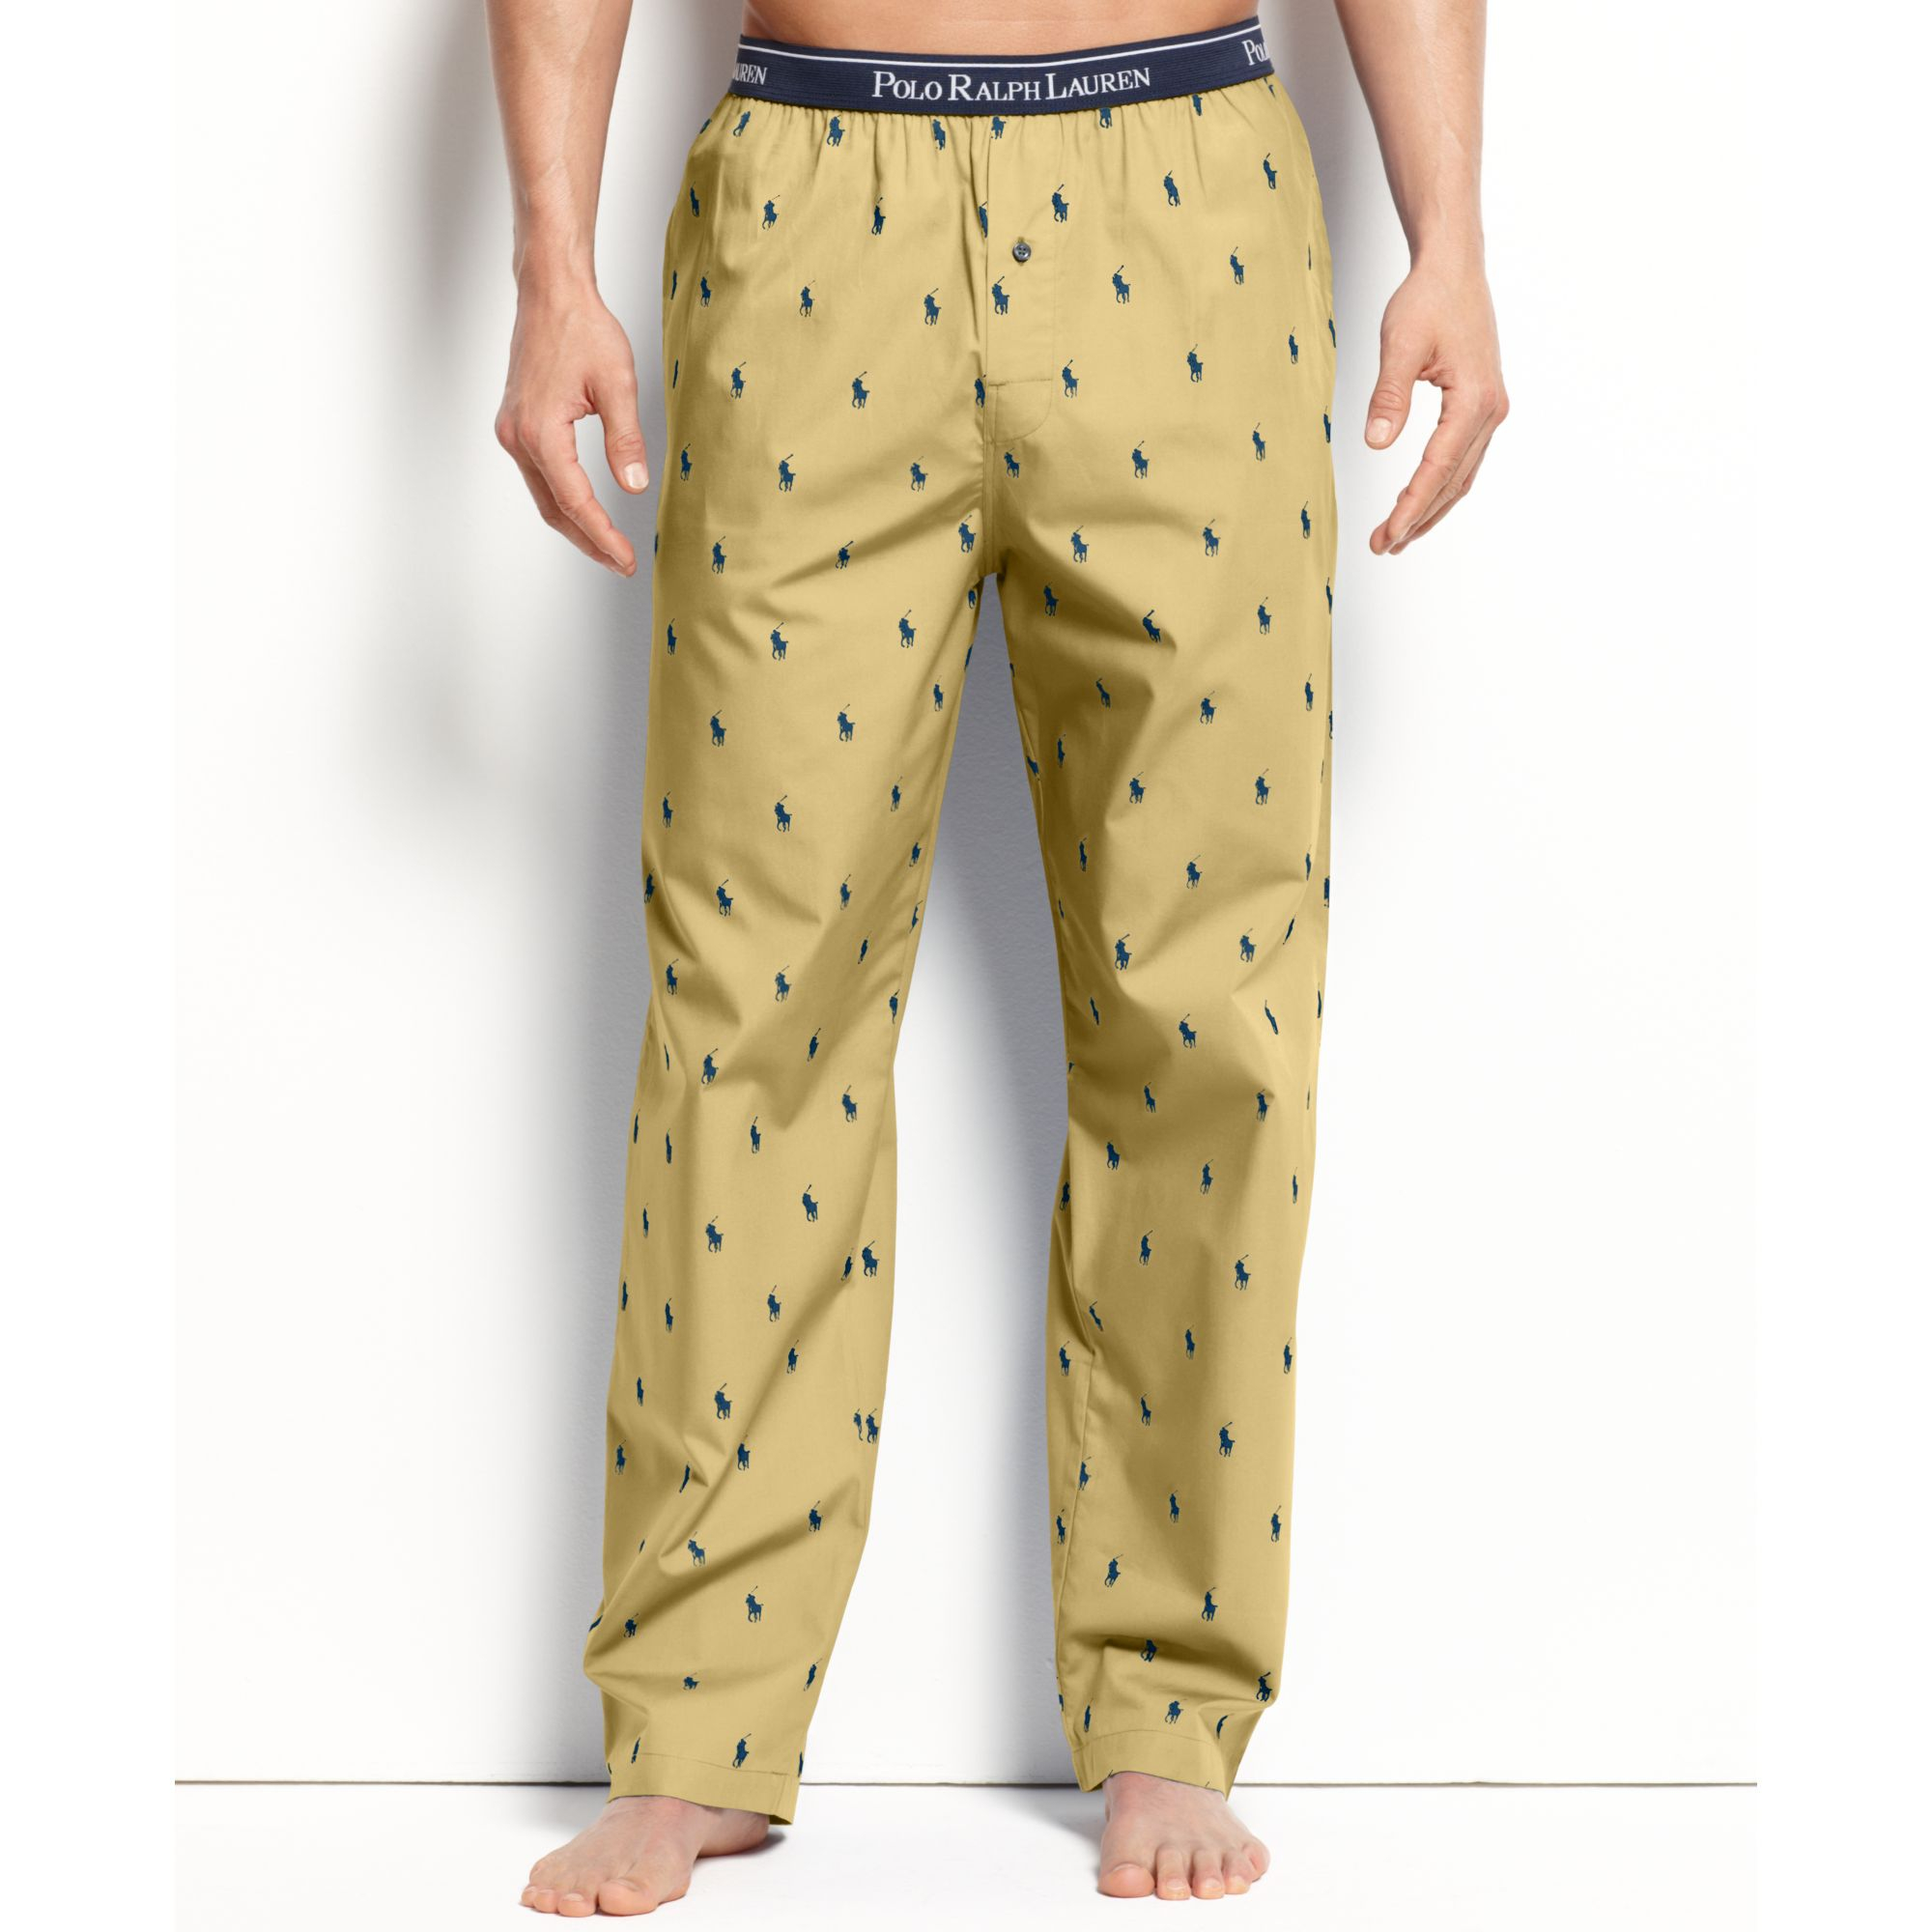 a5547d2808 Lyst - Polo Ralph Lauren All Over Polo Player Woven Pajama Pant in ...